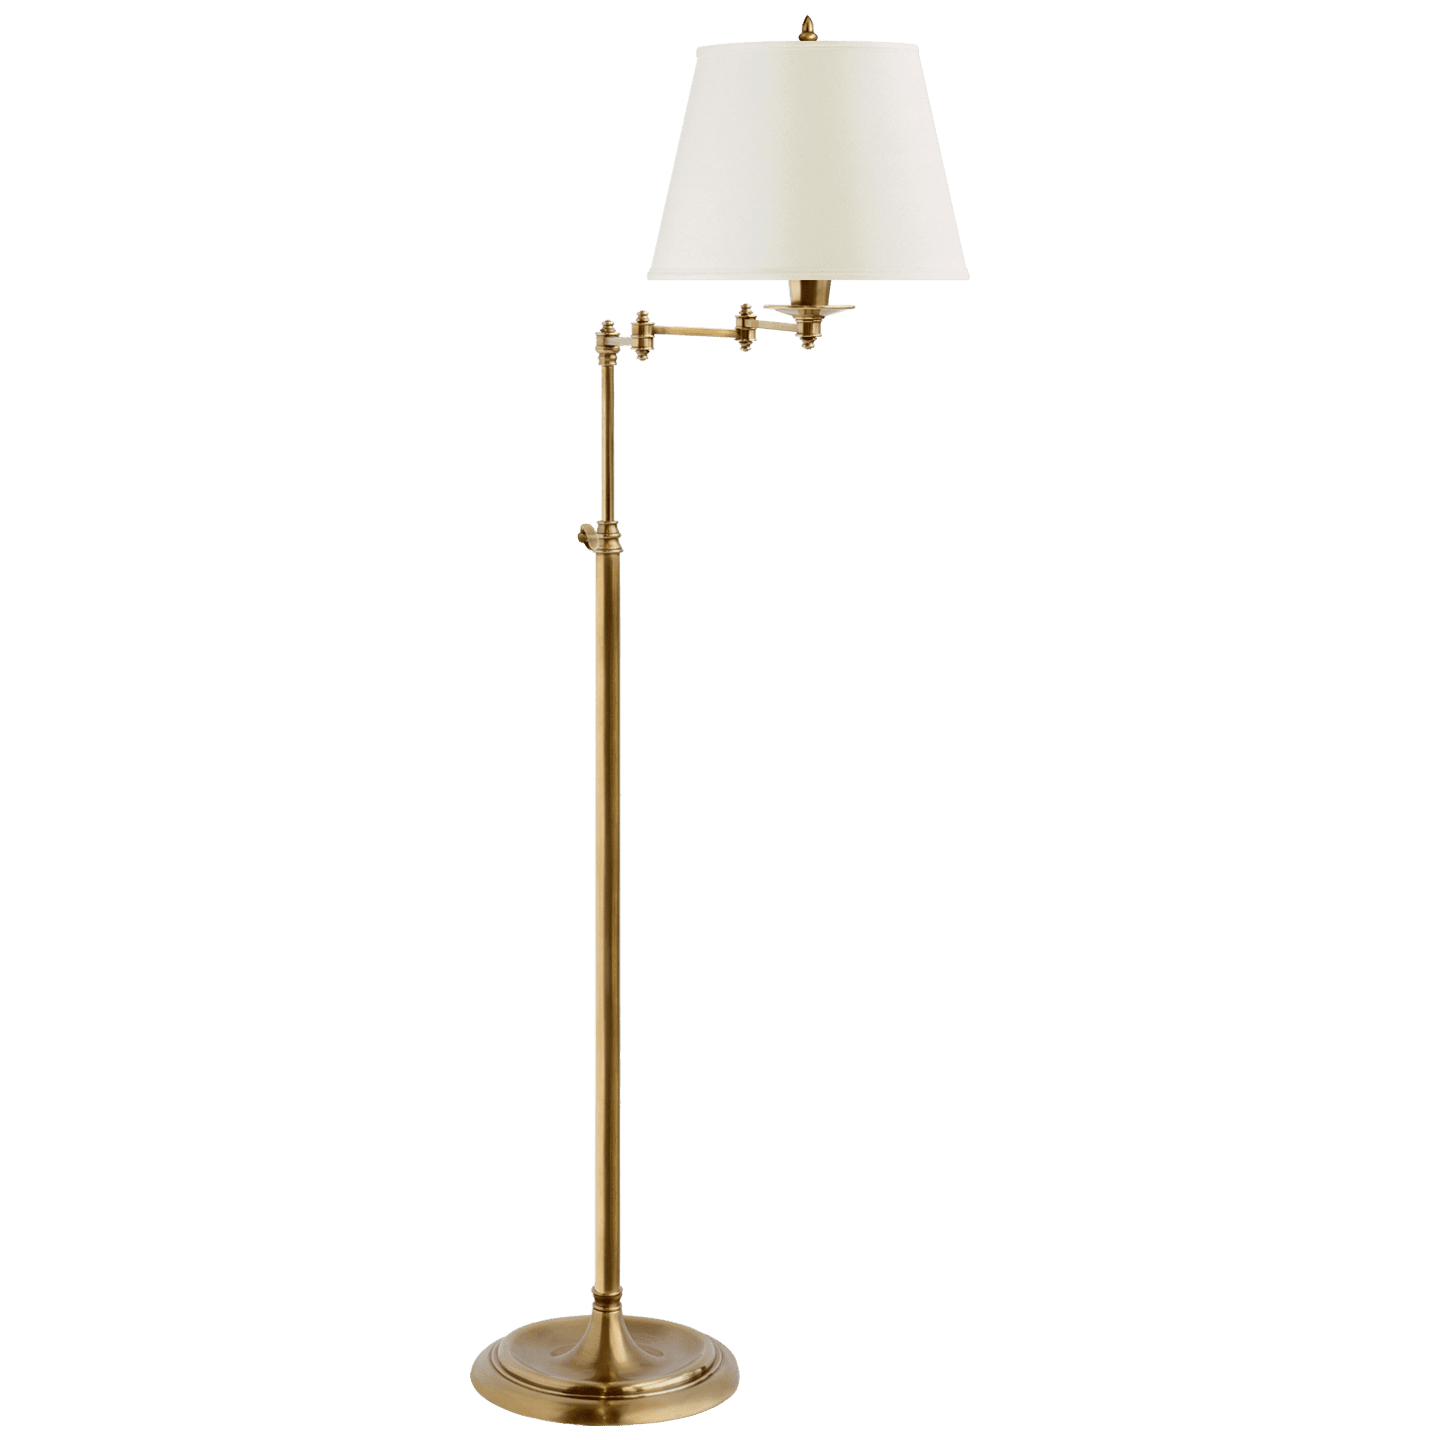 Circa Lighting Triple Swing Arm Floor Lamp